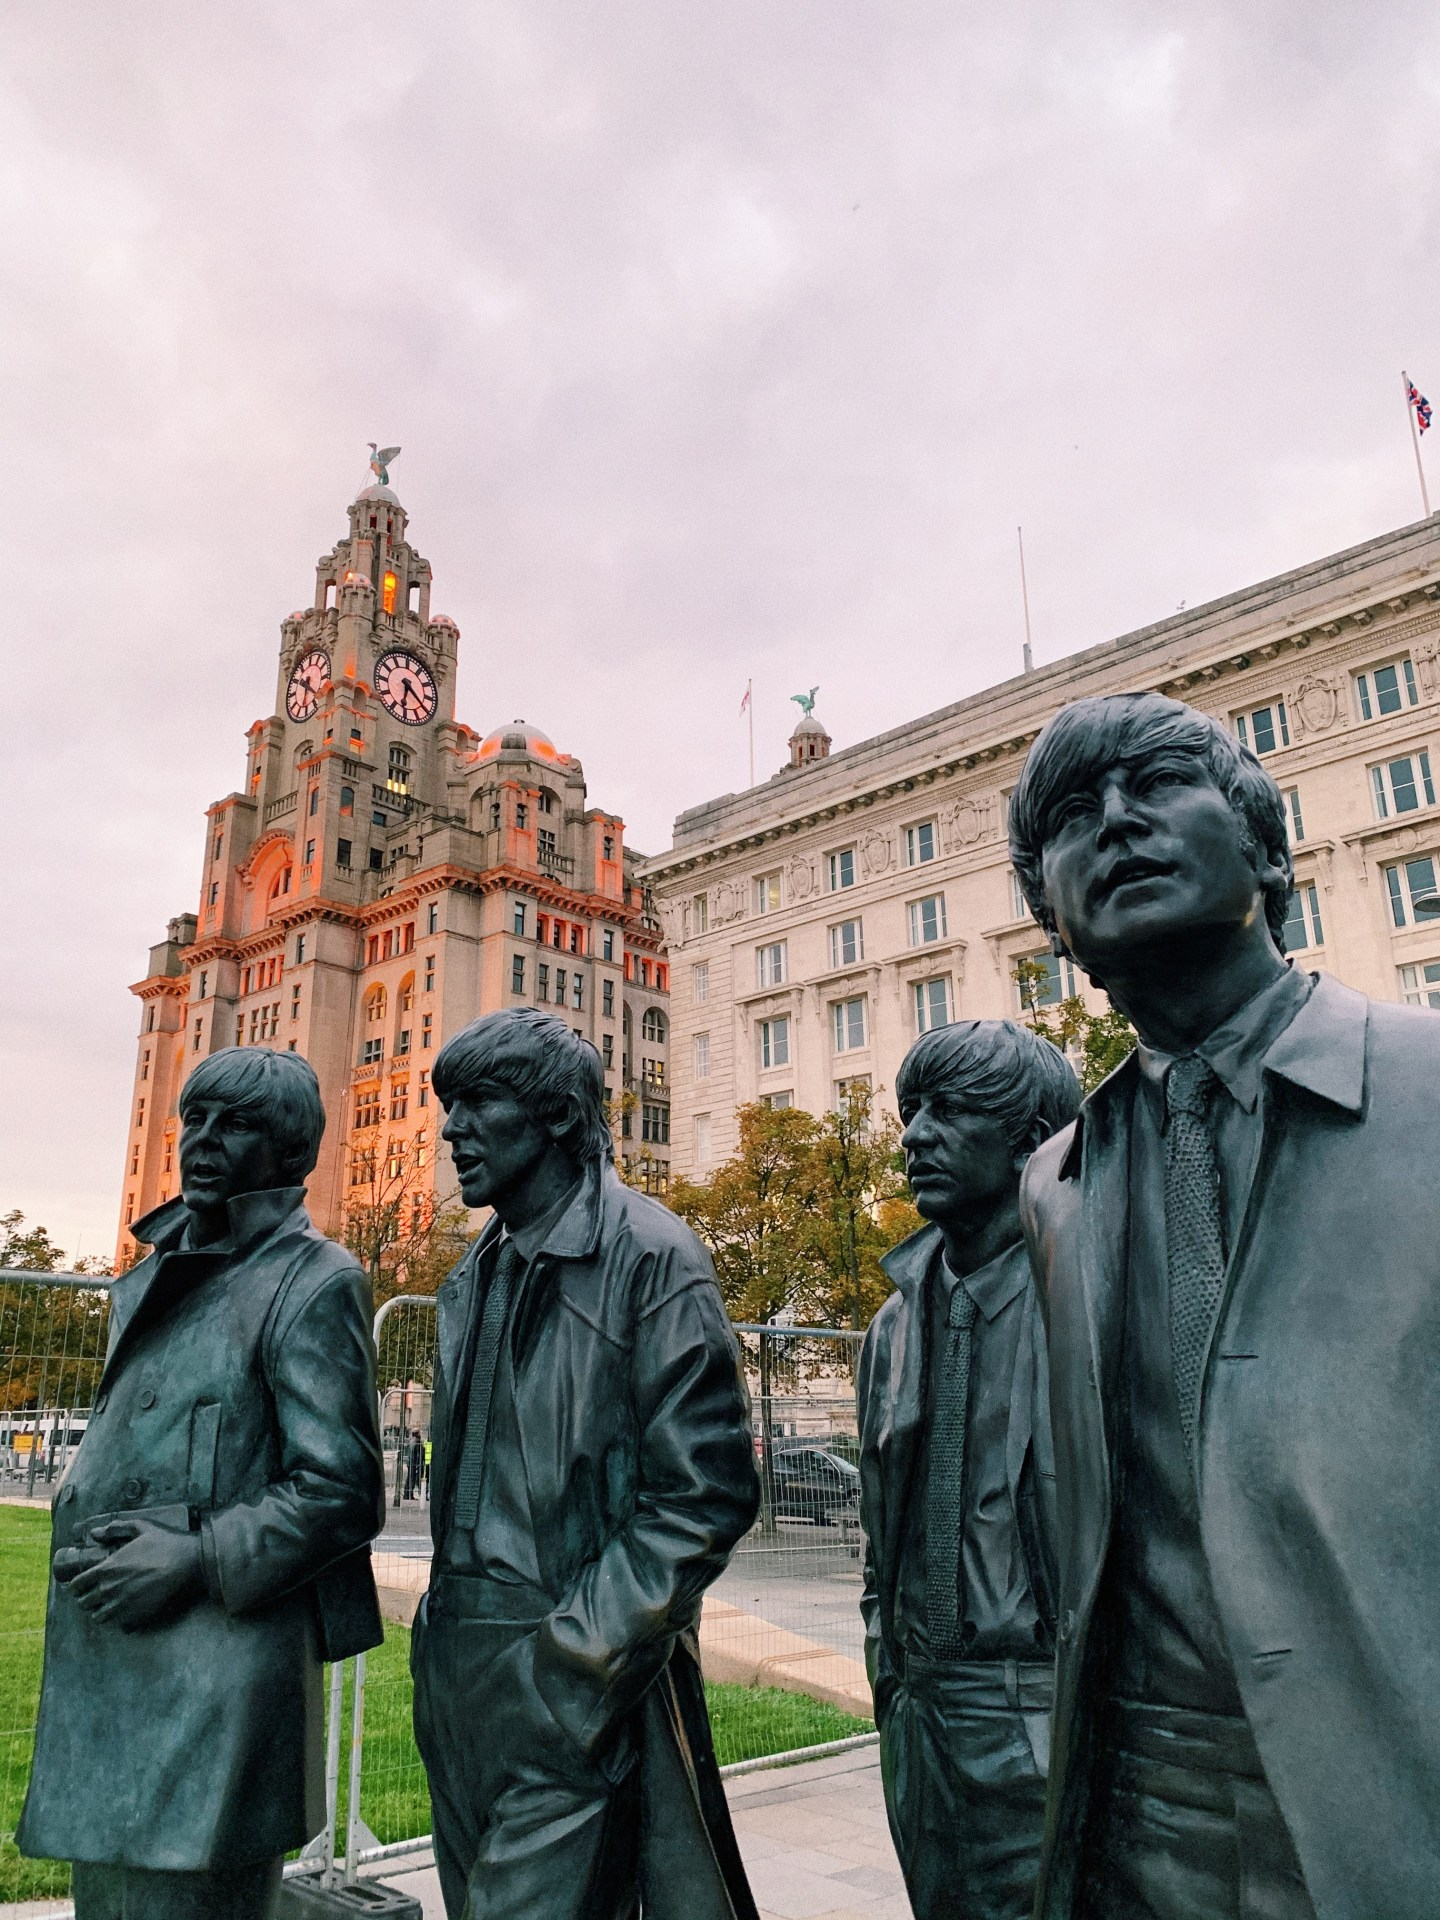 Liverpool Beatles Statue and Liver Building